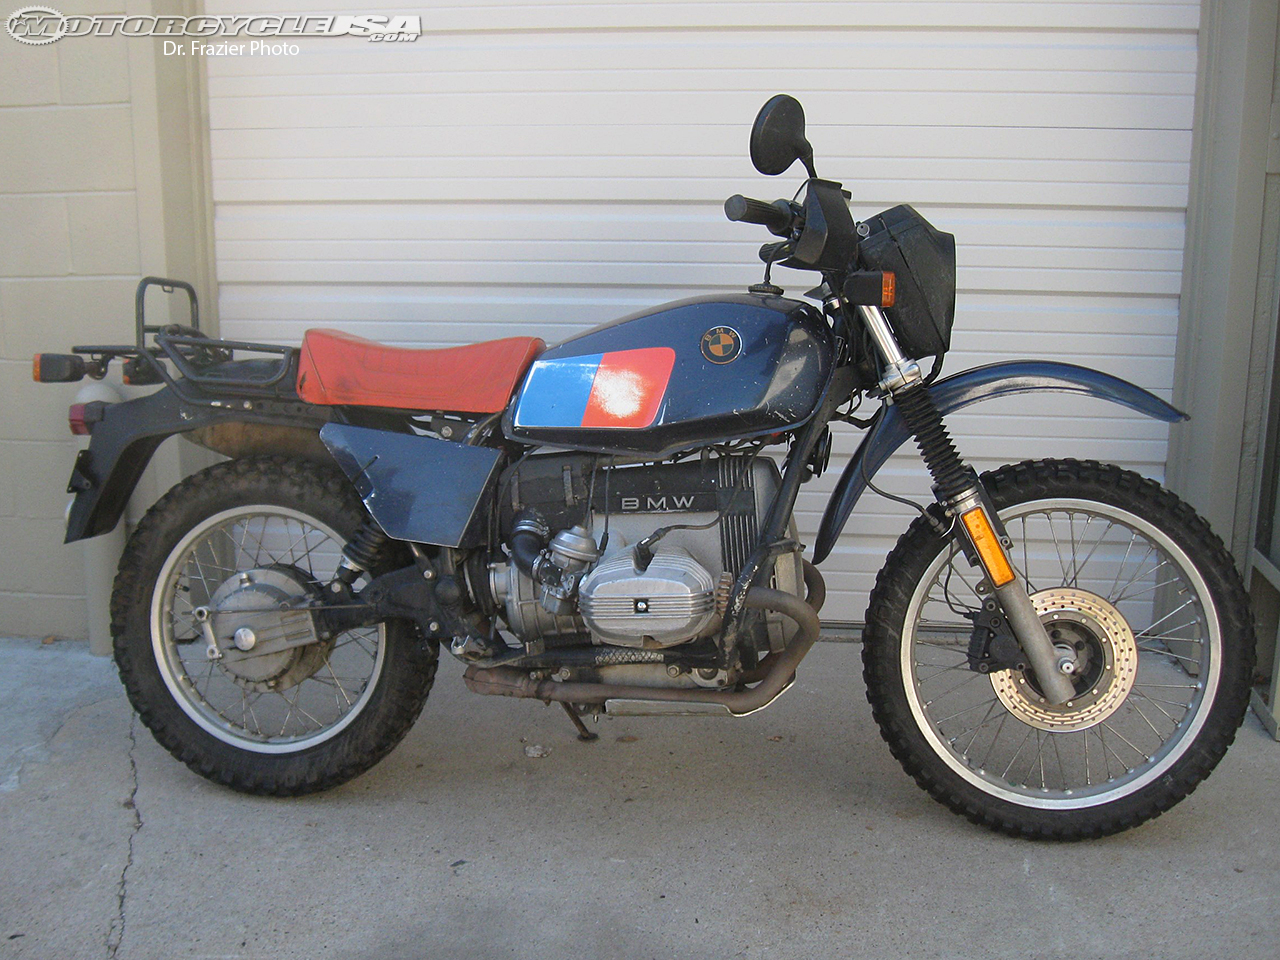 BMW R80GS 1996 images #154847